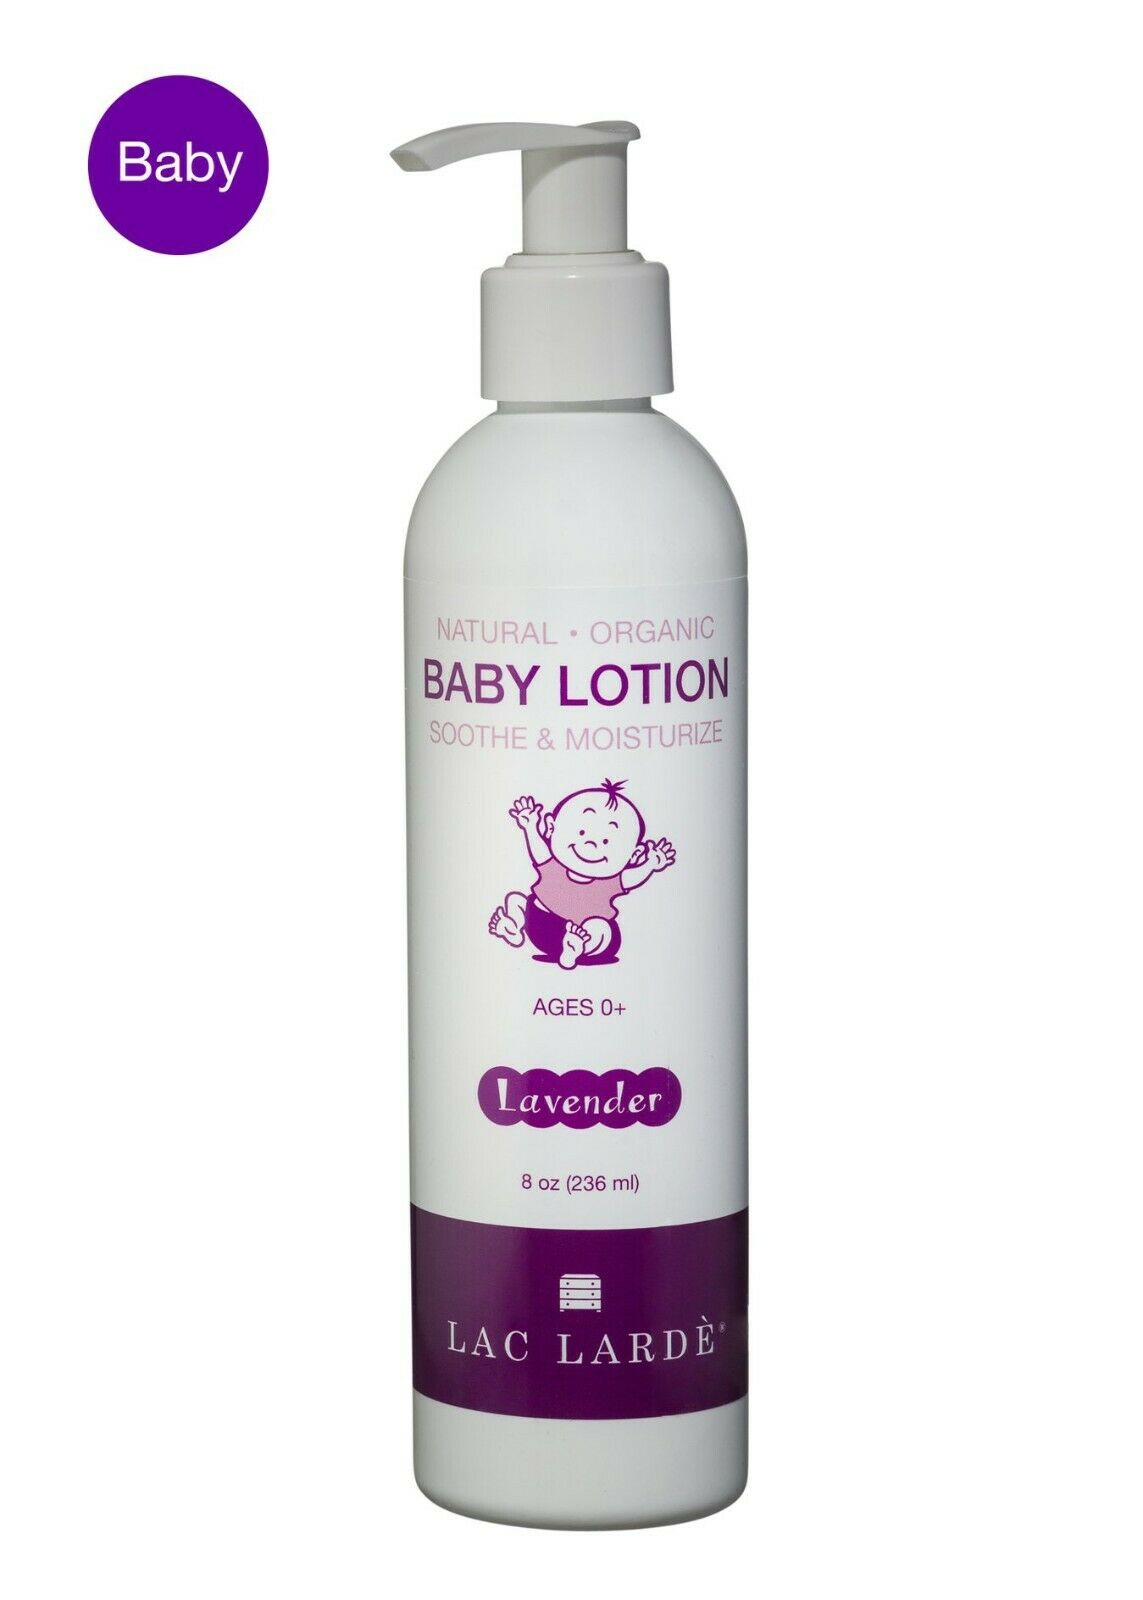 Organic & Natural Baby Lotion, 8 oz. Recommended for Eczema